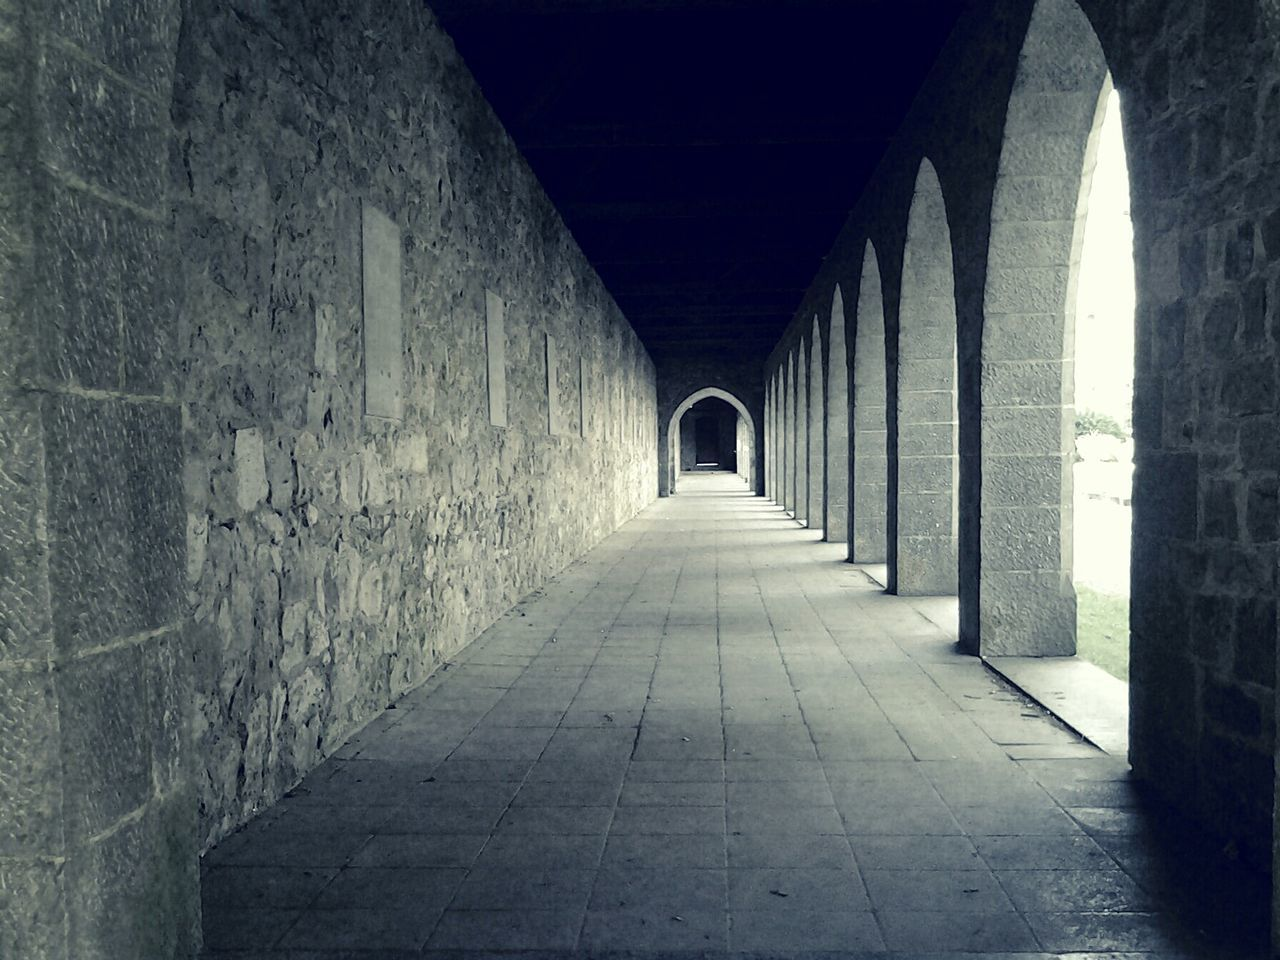 Belgium Historical Monuments Abbaye Beer Production Arcades Lamdscapes With Whitewall